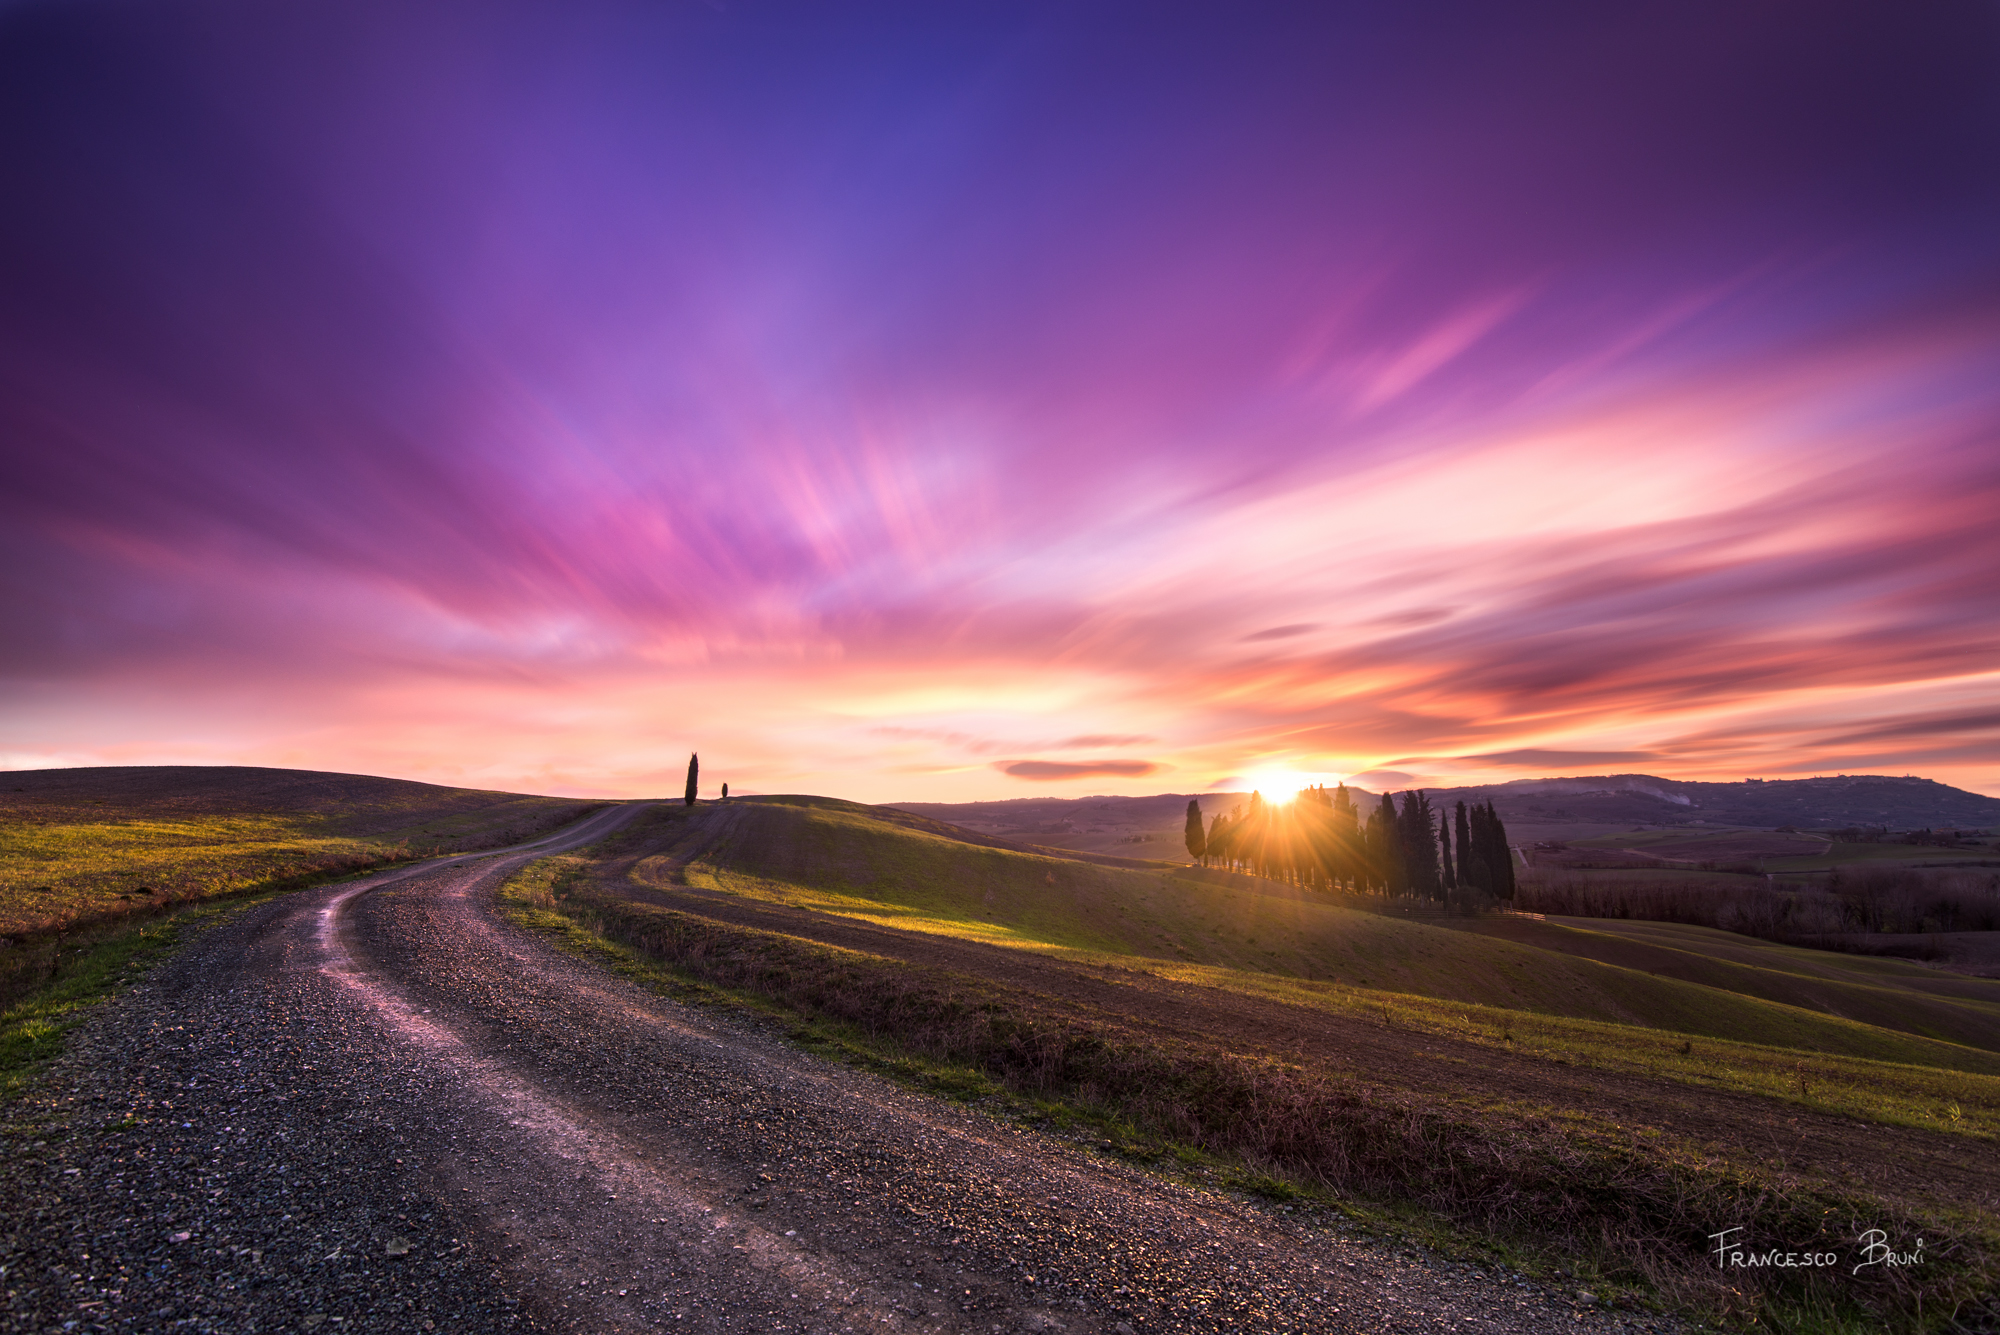 A trivial sunset in Valdorcia...